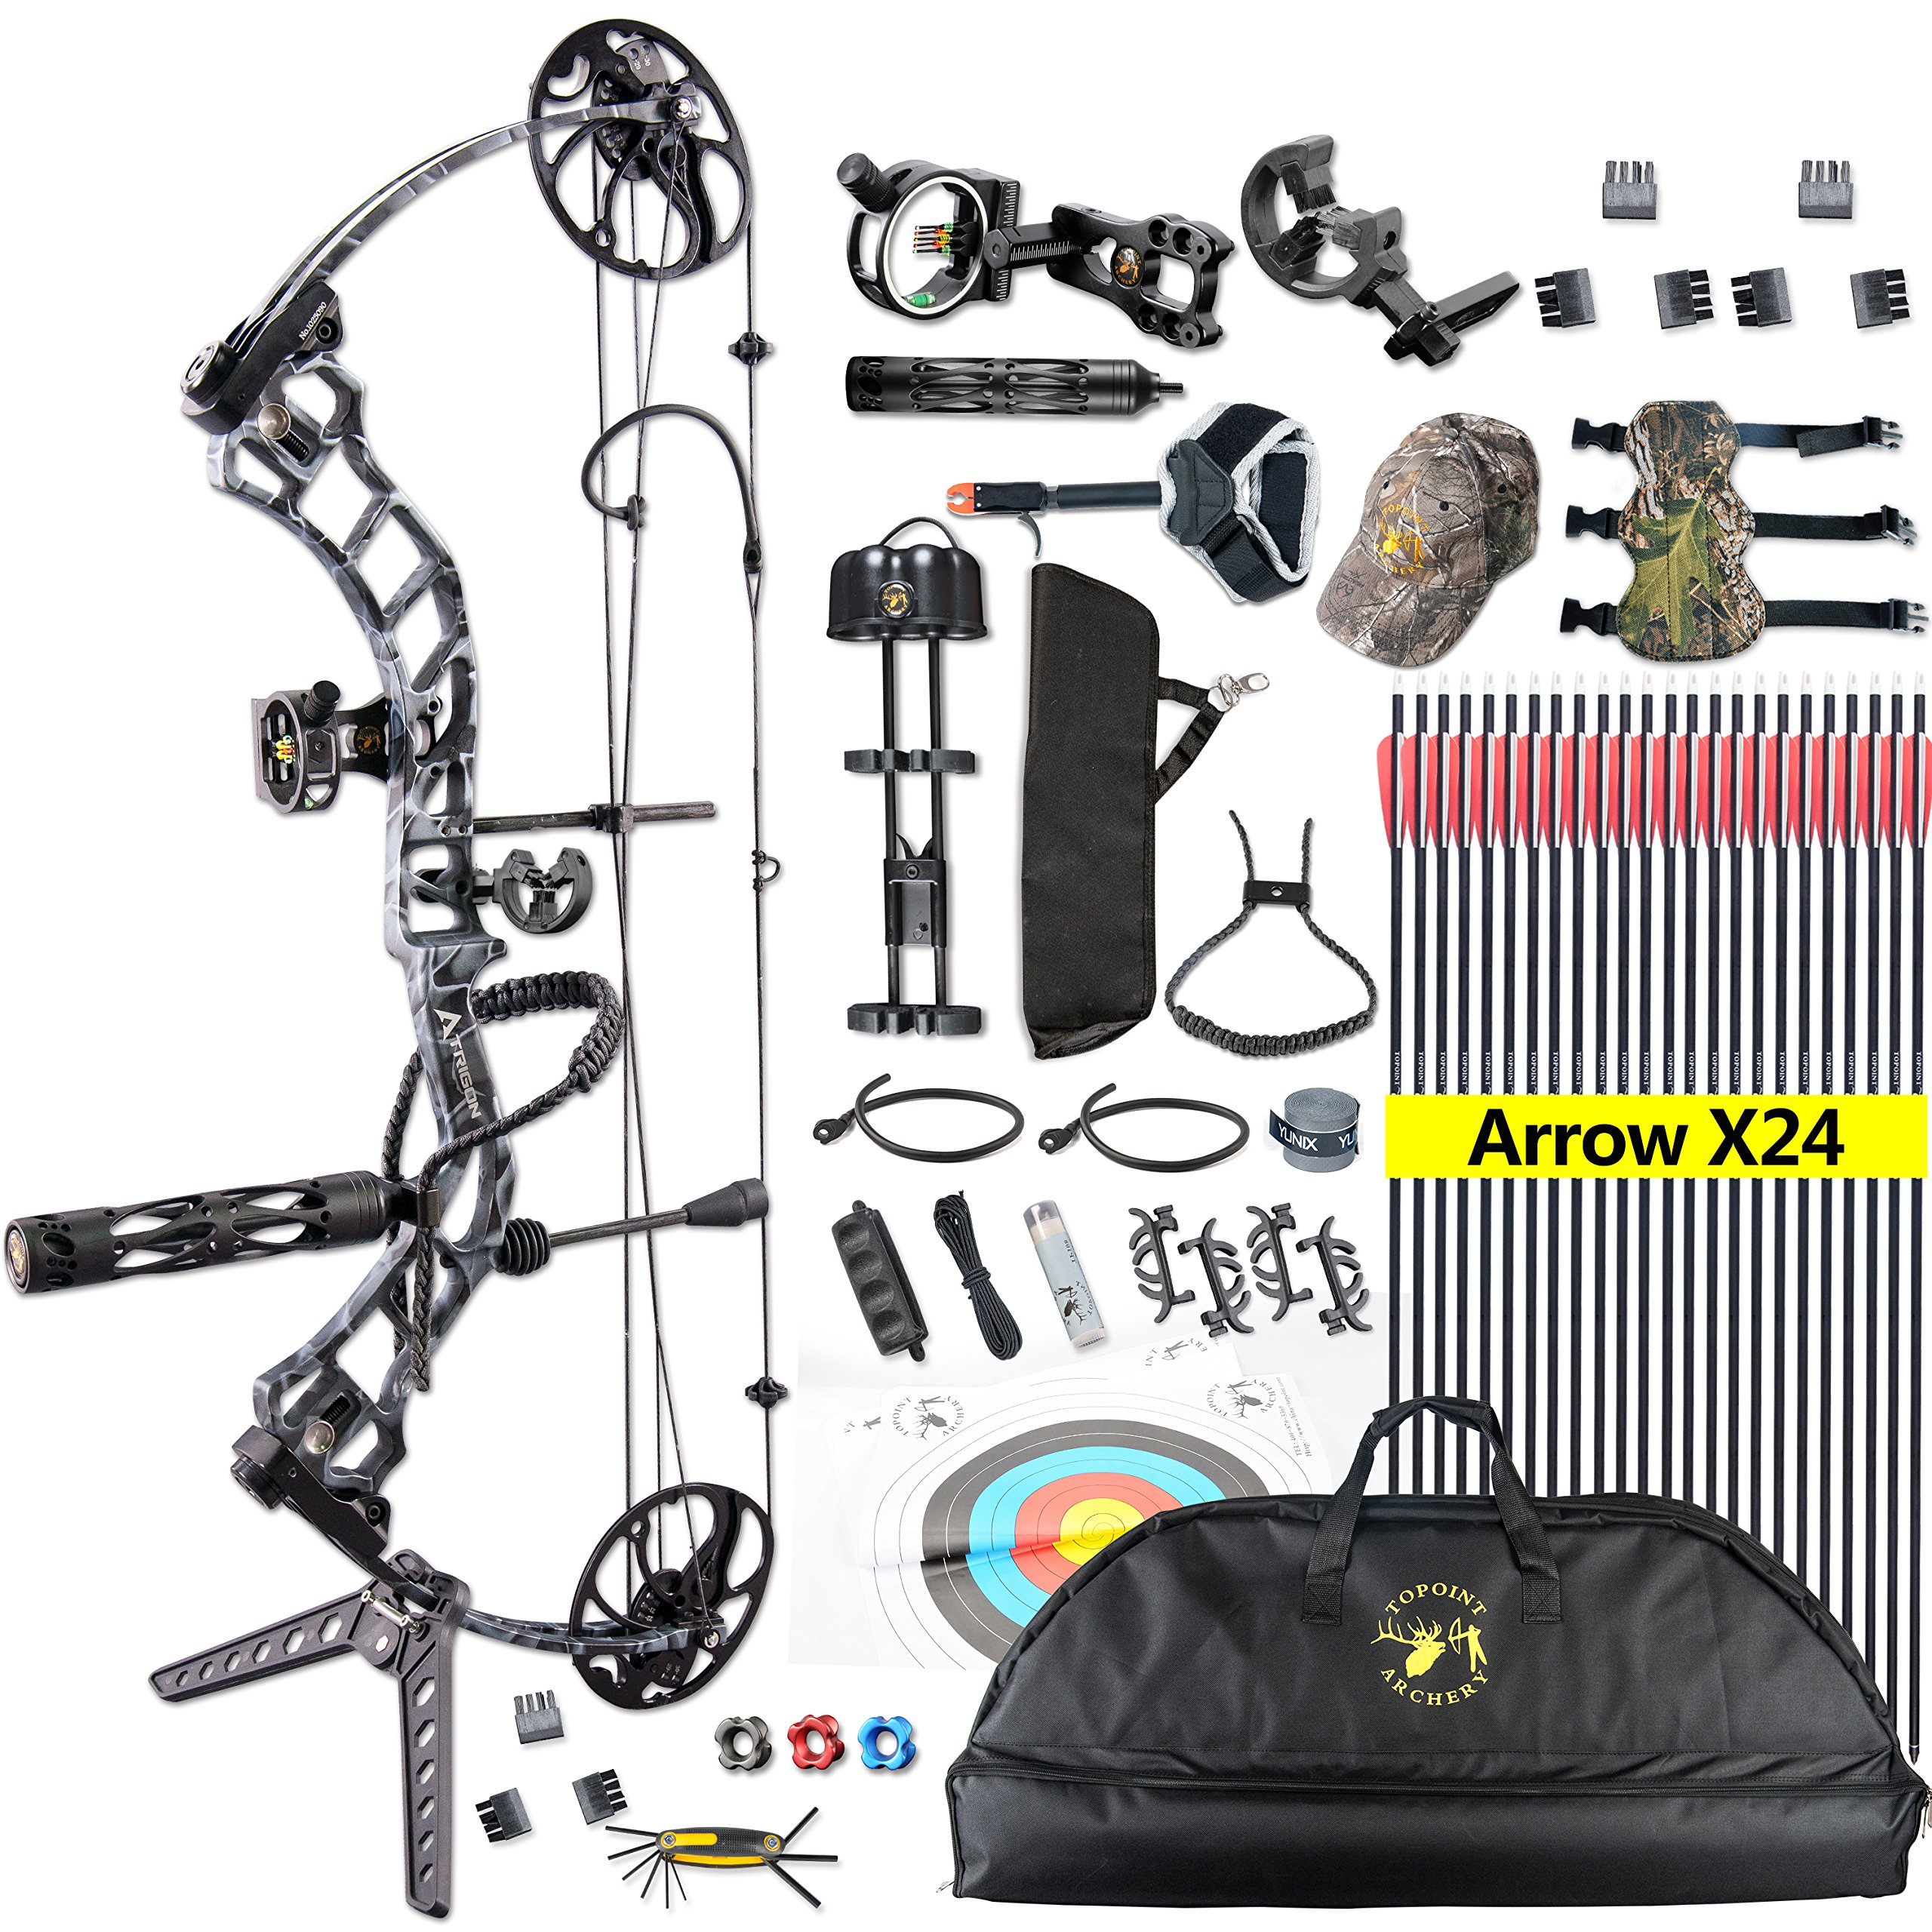 TOPOINT Trigon Compound Bow Full Package,CNC Milling Riser,USA Gordon Composites Limb,BCY String,19''-30'' Draw Length,19-70Lbs Draw Weight,IBO 320fps (Black CAMO)